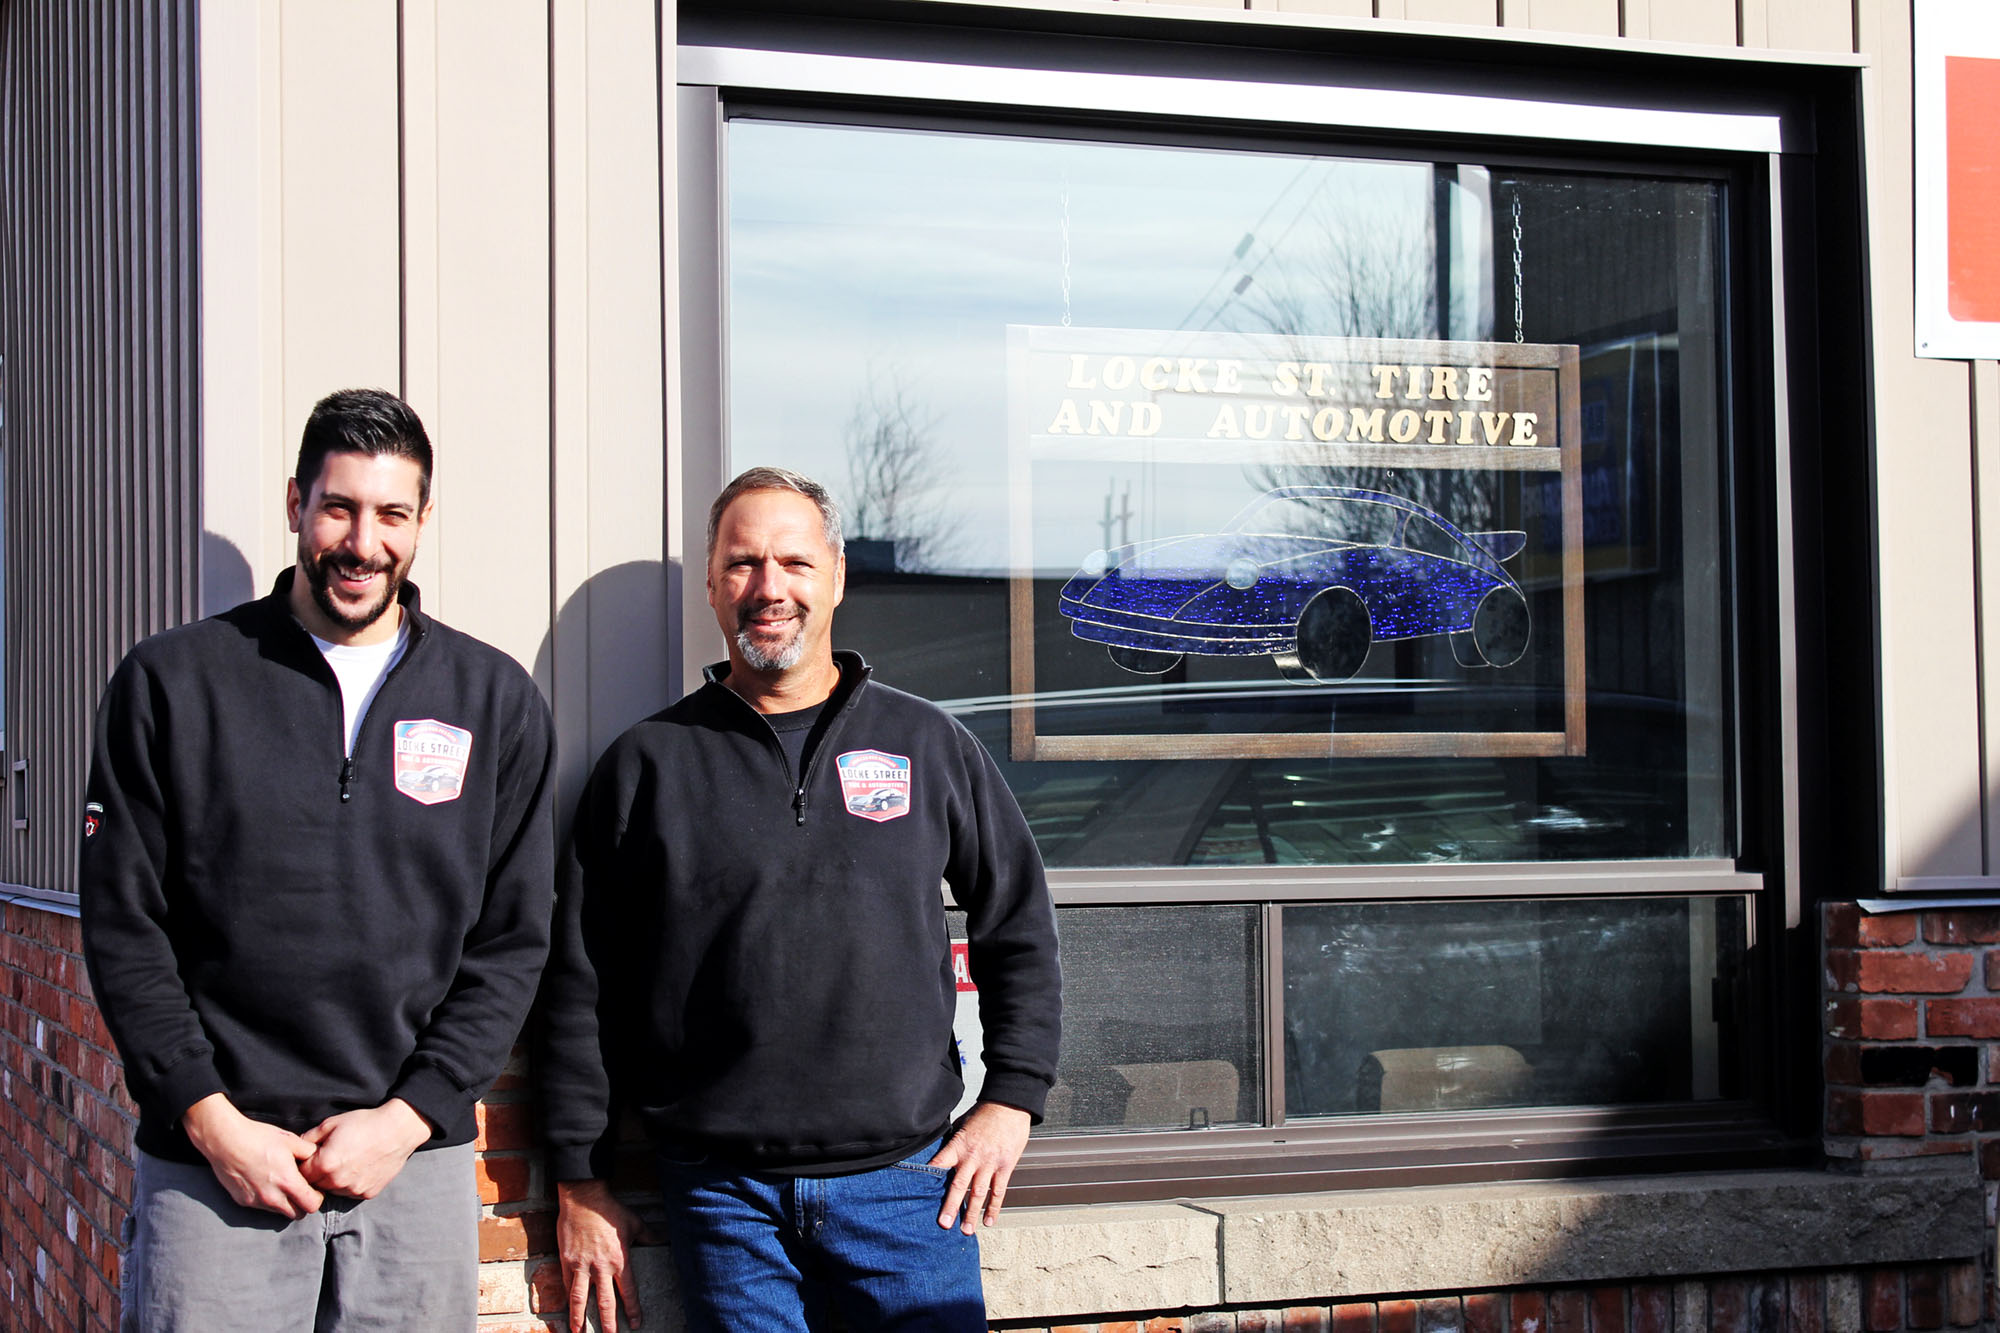 James Maida & Robert Bernacci outside Locke Street Tire & Automotive